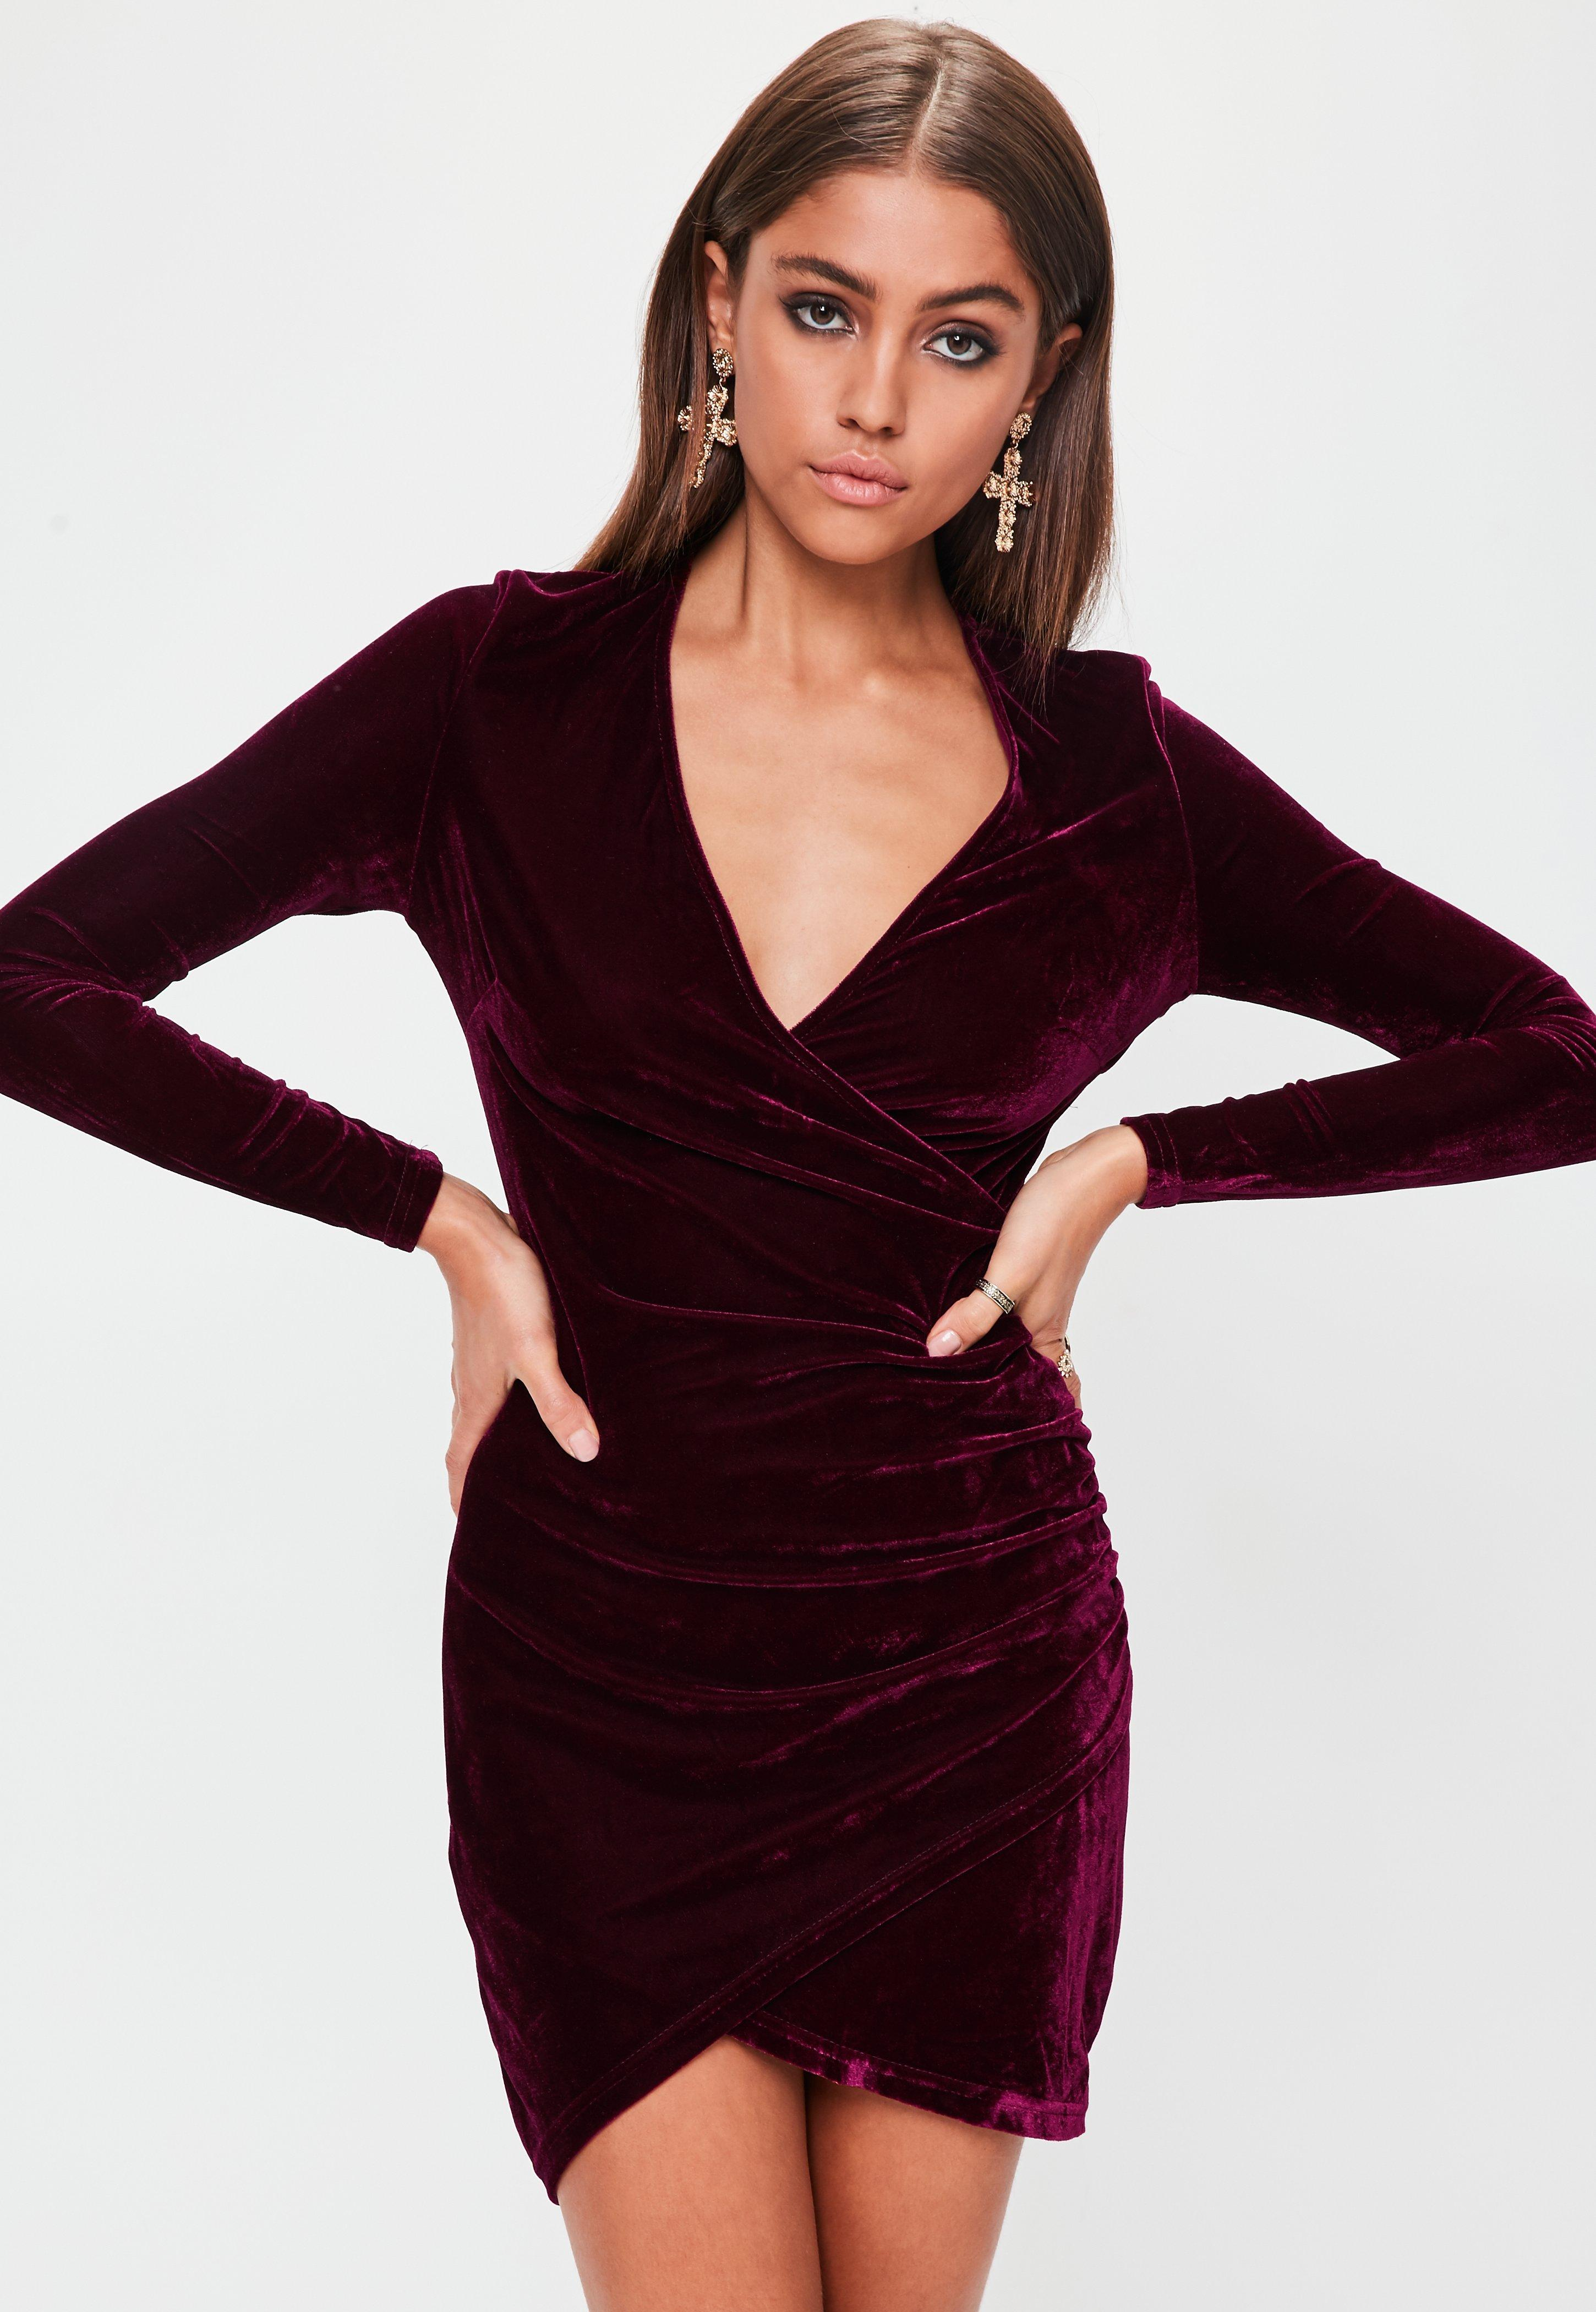 Lyst - Missguided Red Velvet Long Sleeve Wrap Dress in Red 04b32a571